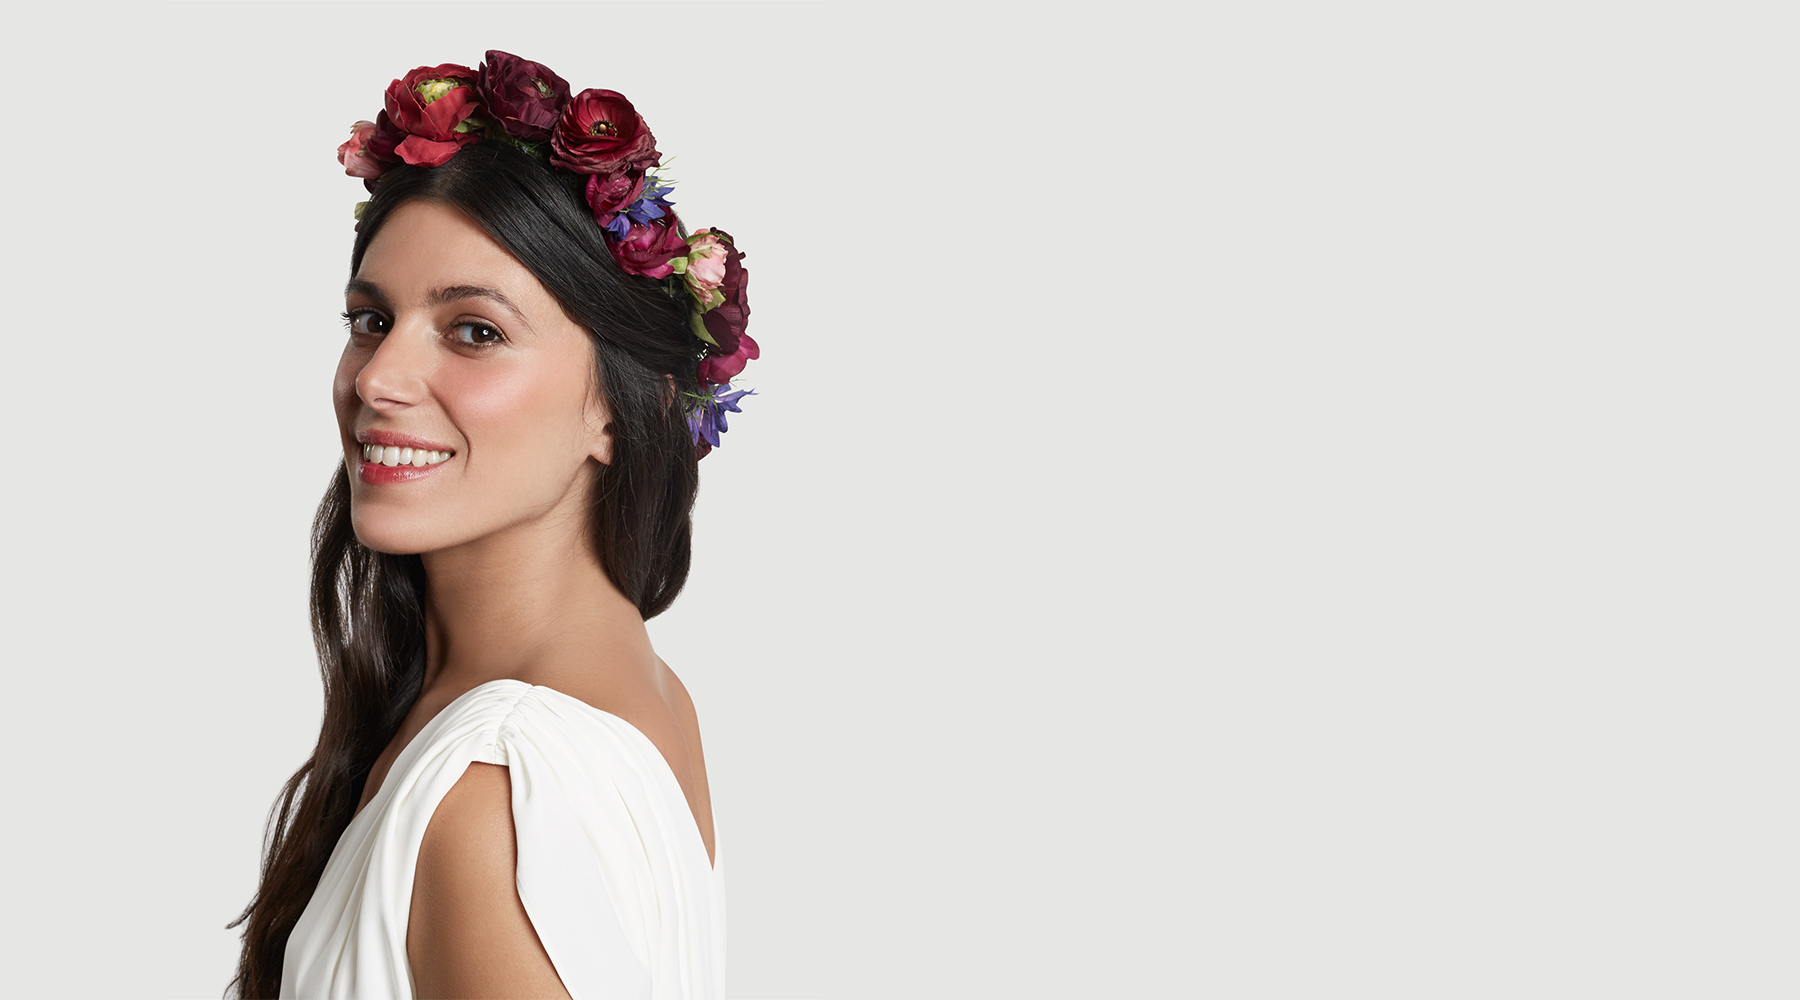 The Scarlett Ohara Floral Halo